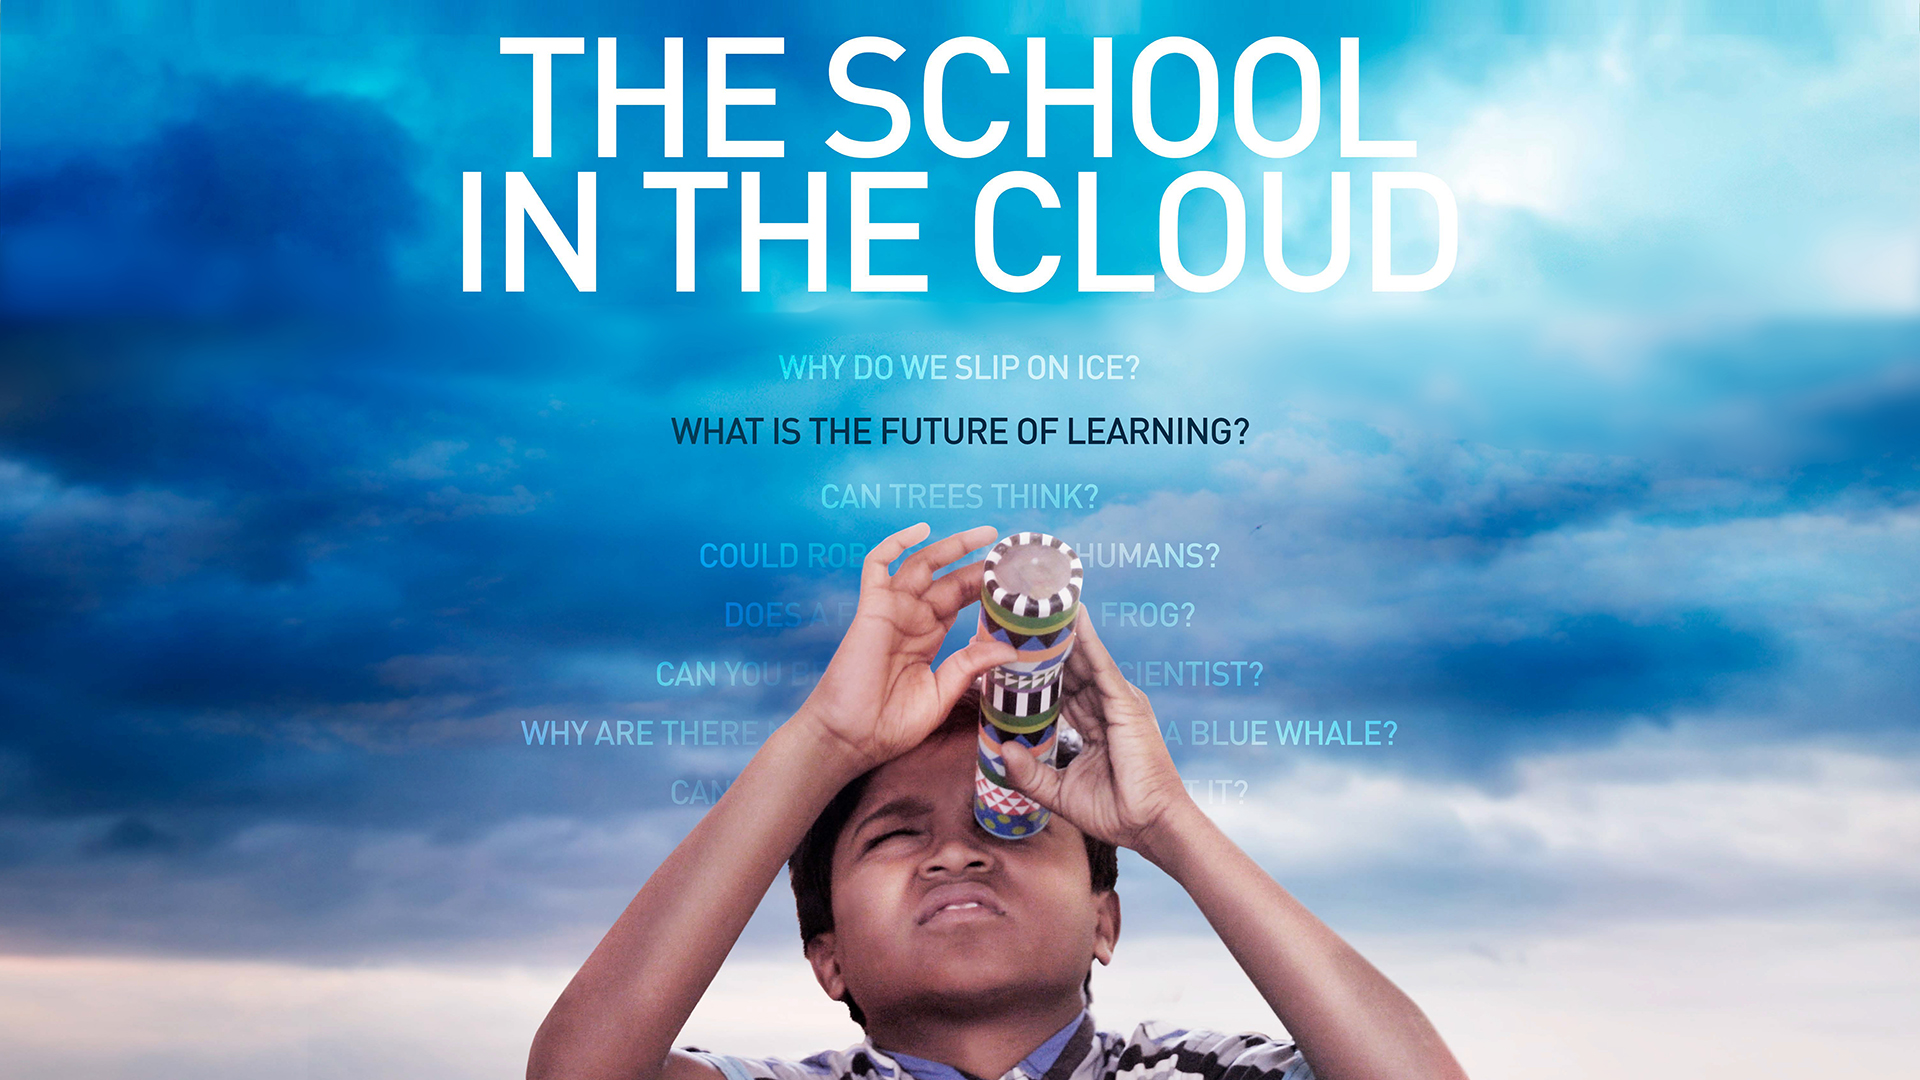 The School In The Cloud film poster